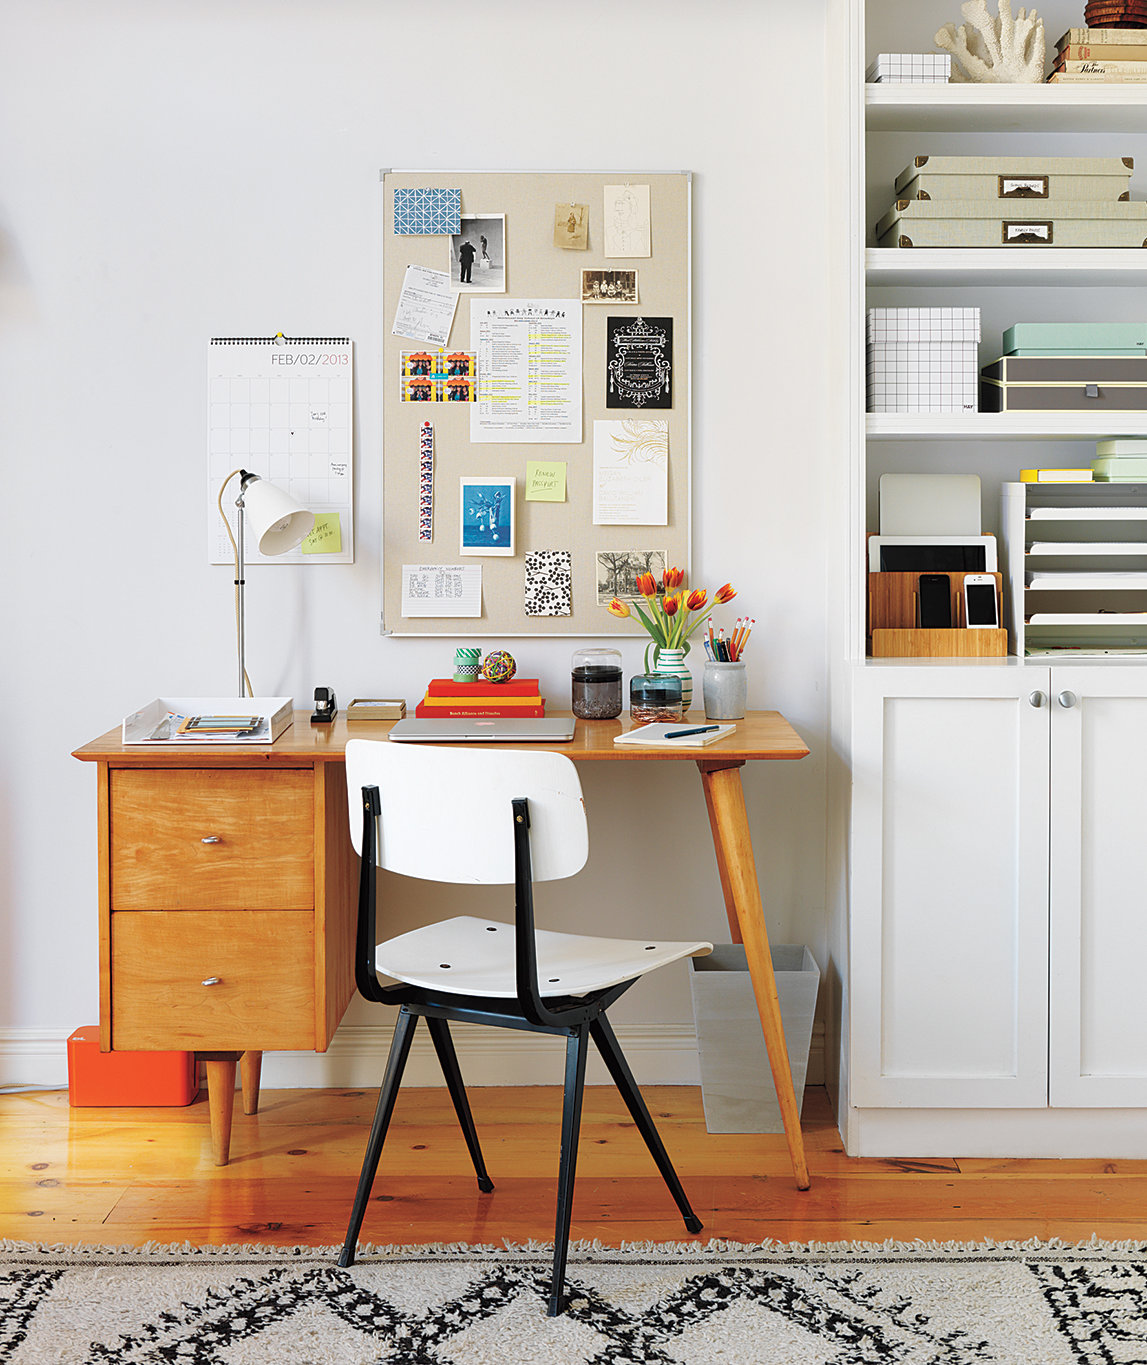 desk-white-chair-bulletin-board-wall-shelving